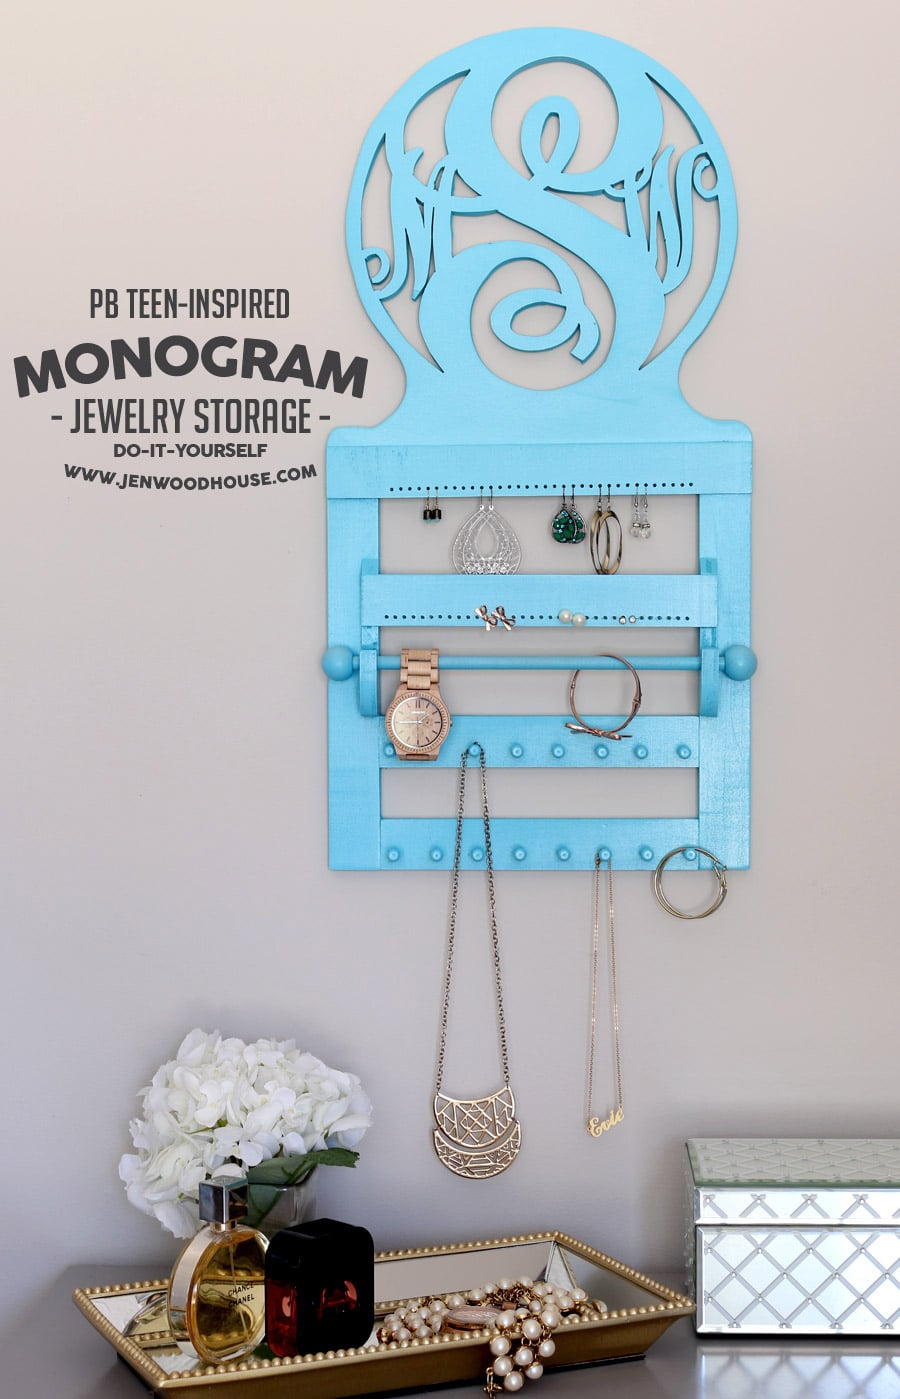 PB Teeninspired monogram wall jewelry storage